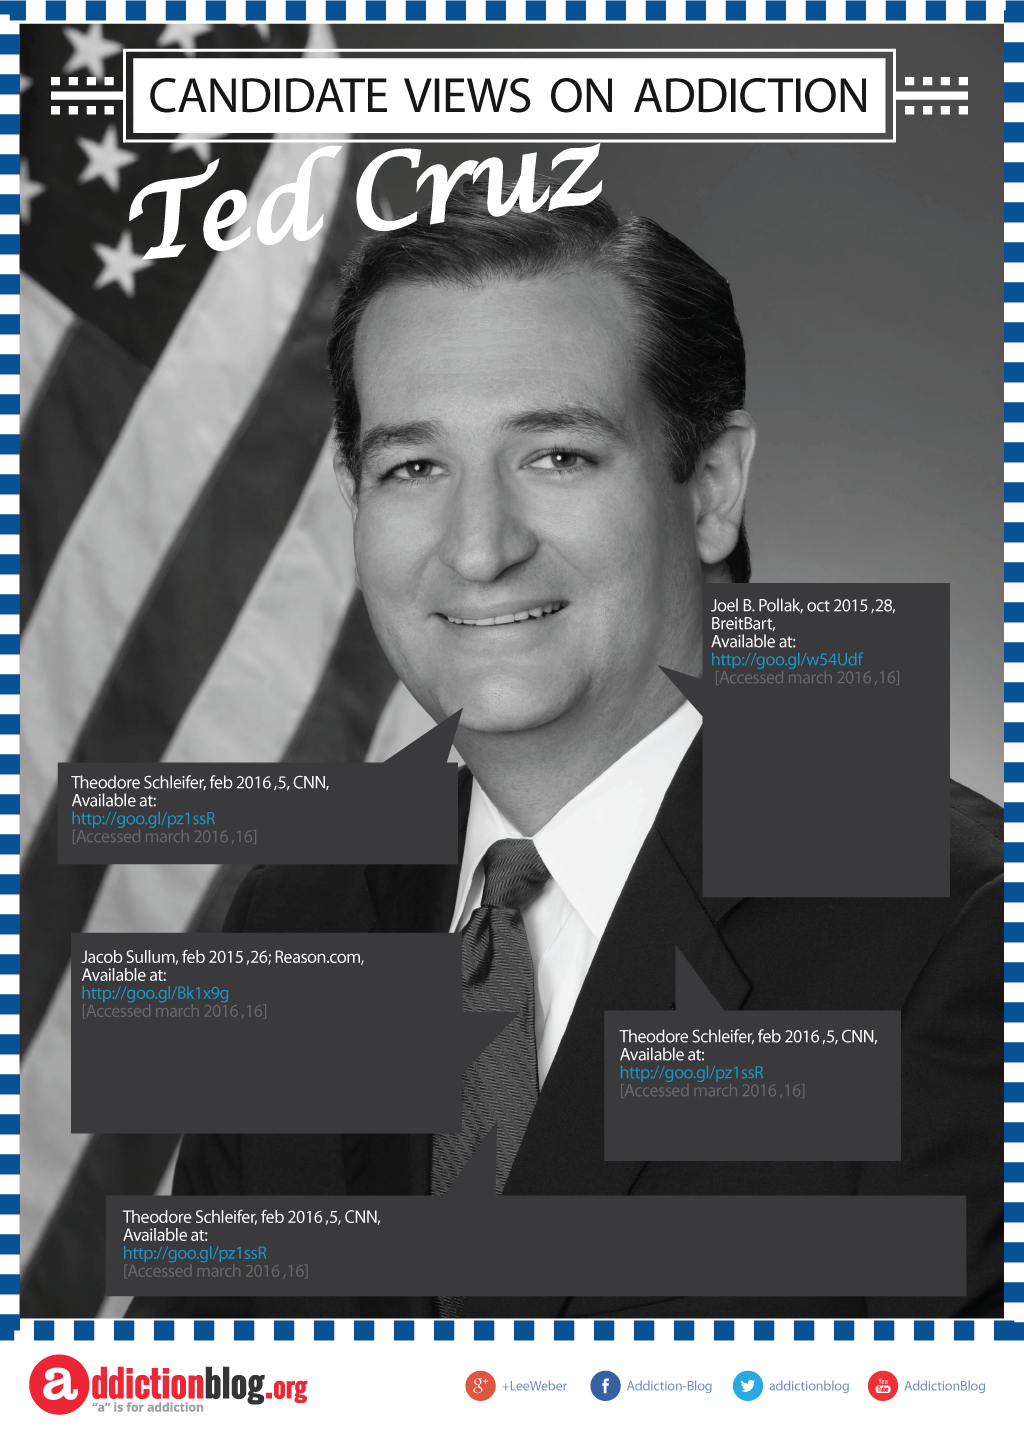 FAQ_Ted_cruz-b&w_2.3